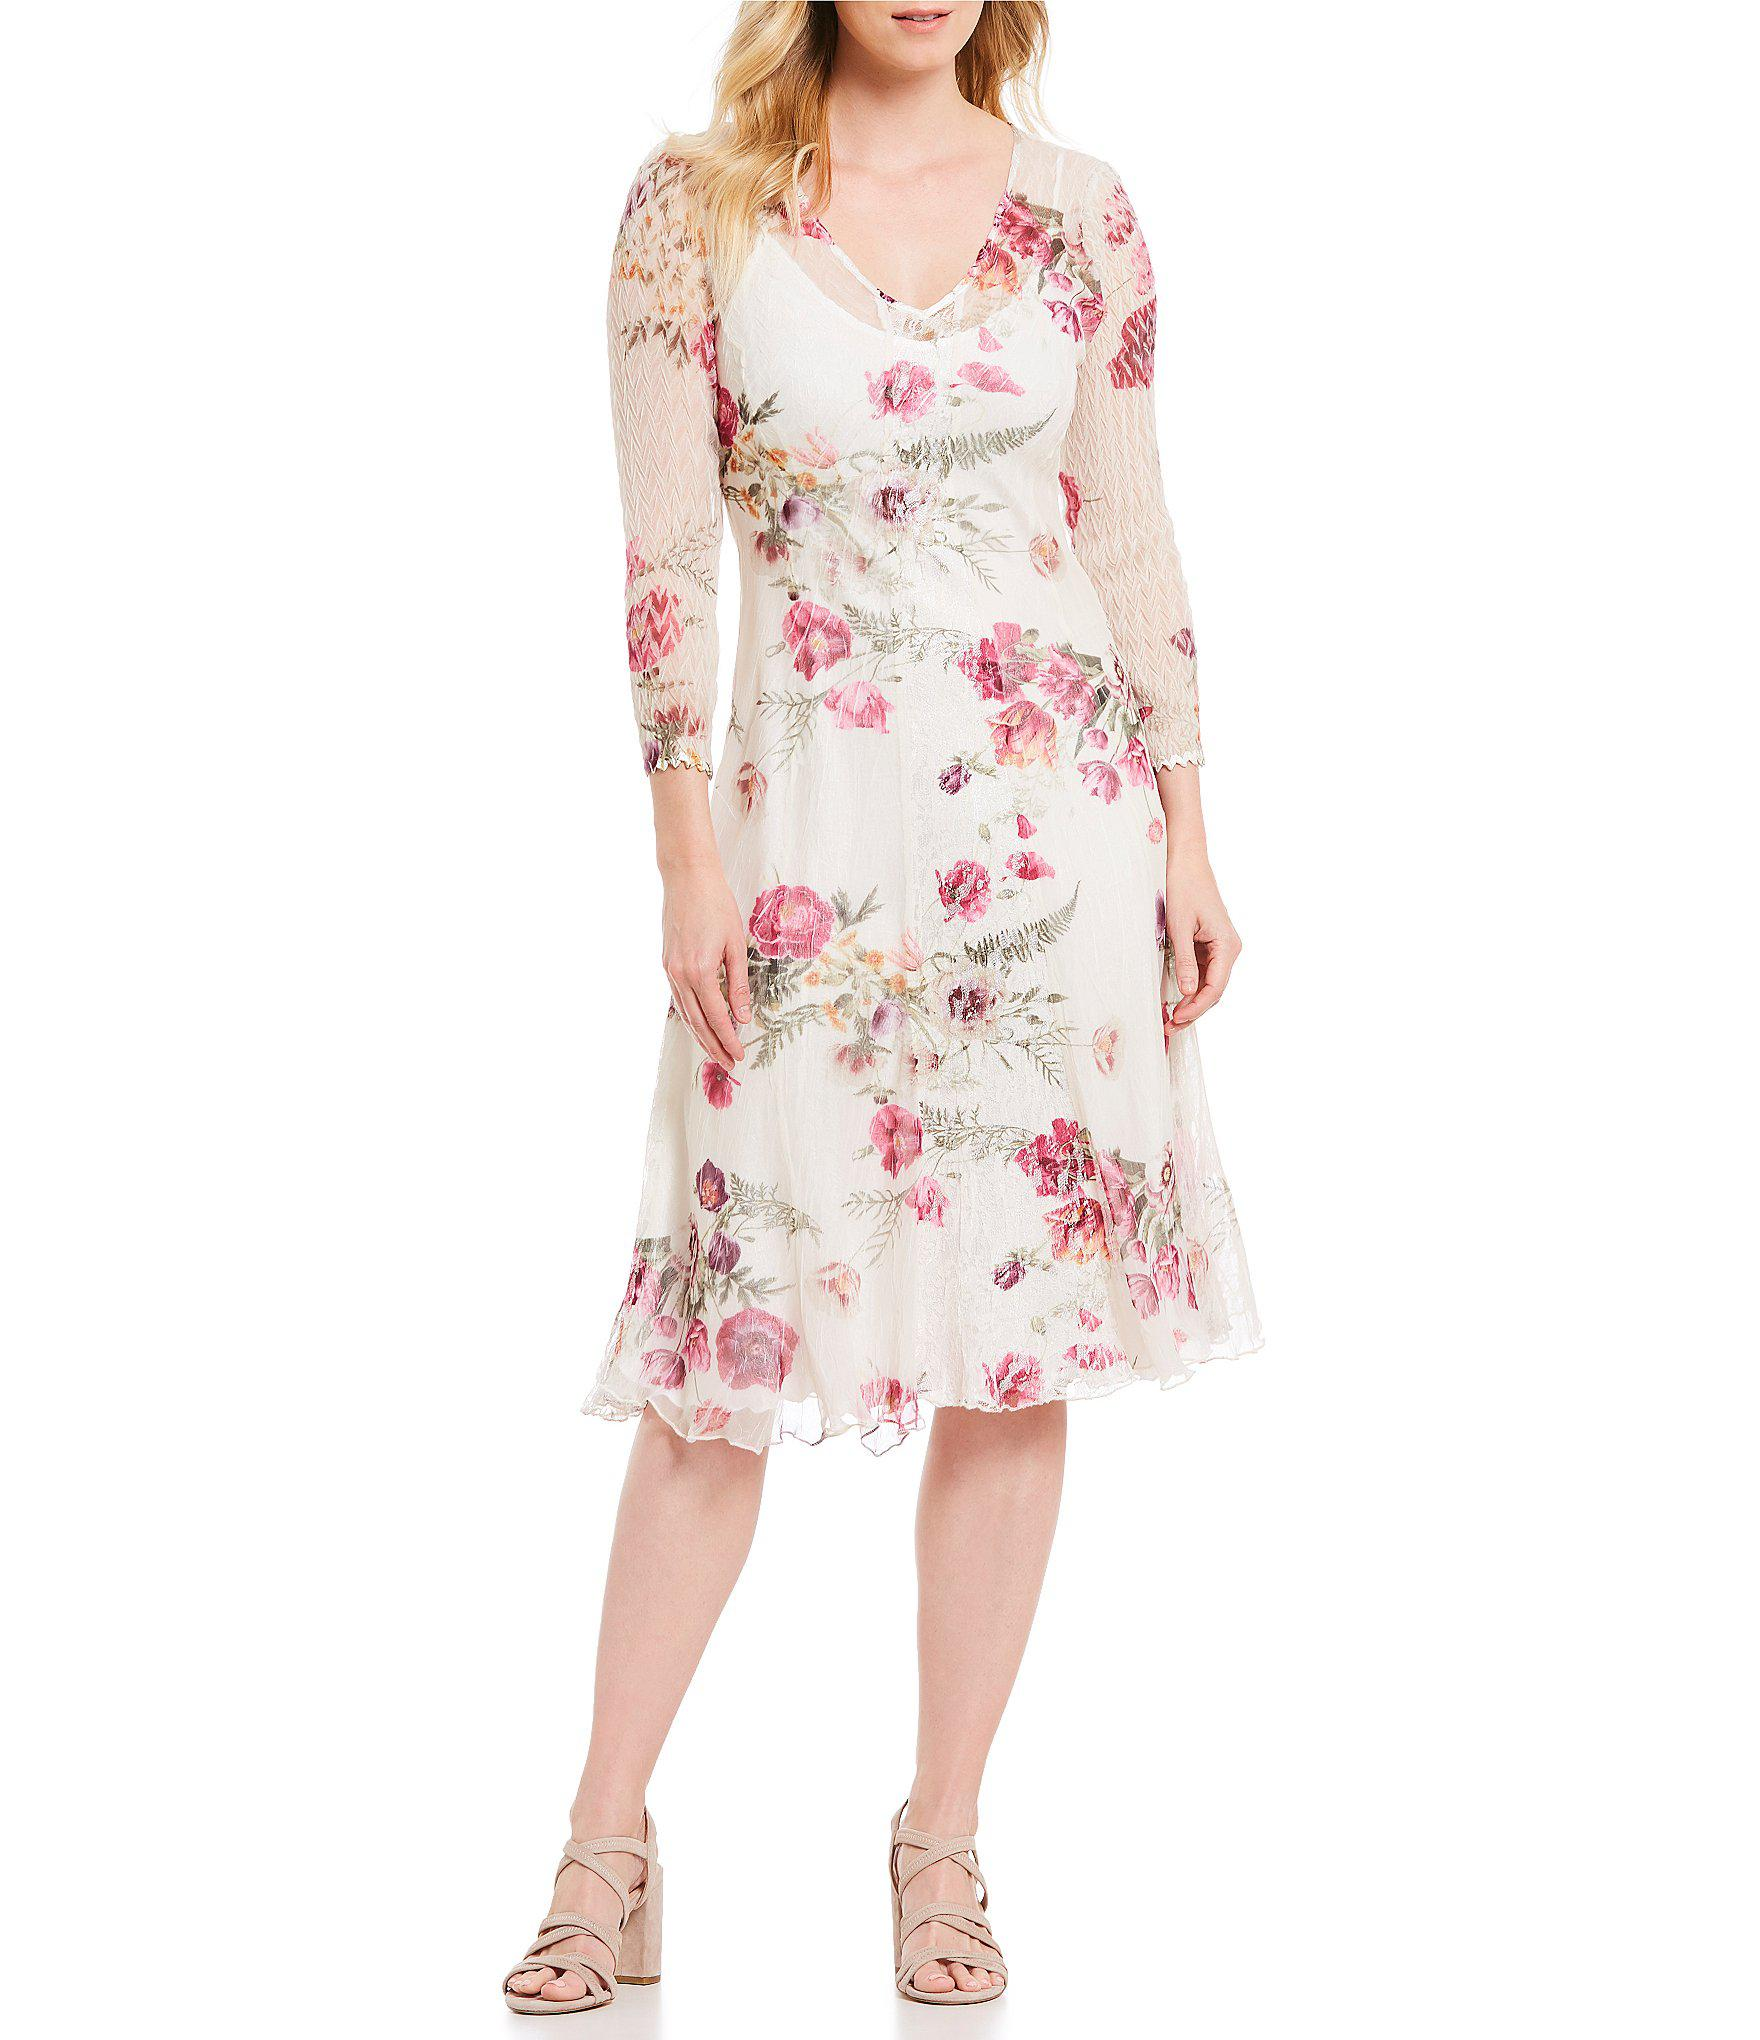 3bc9334c81 Lyst - Komarov V Neck Floral Print Midi Dress